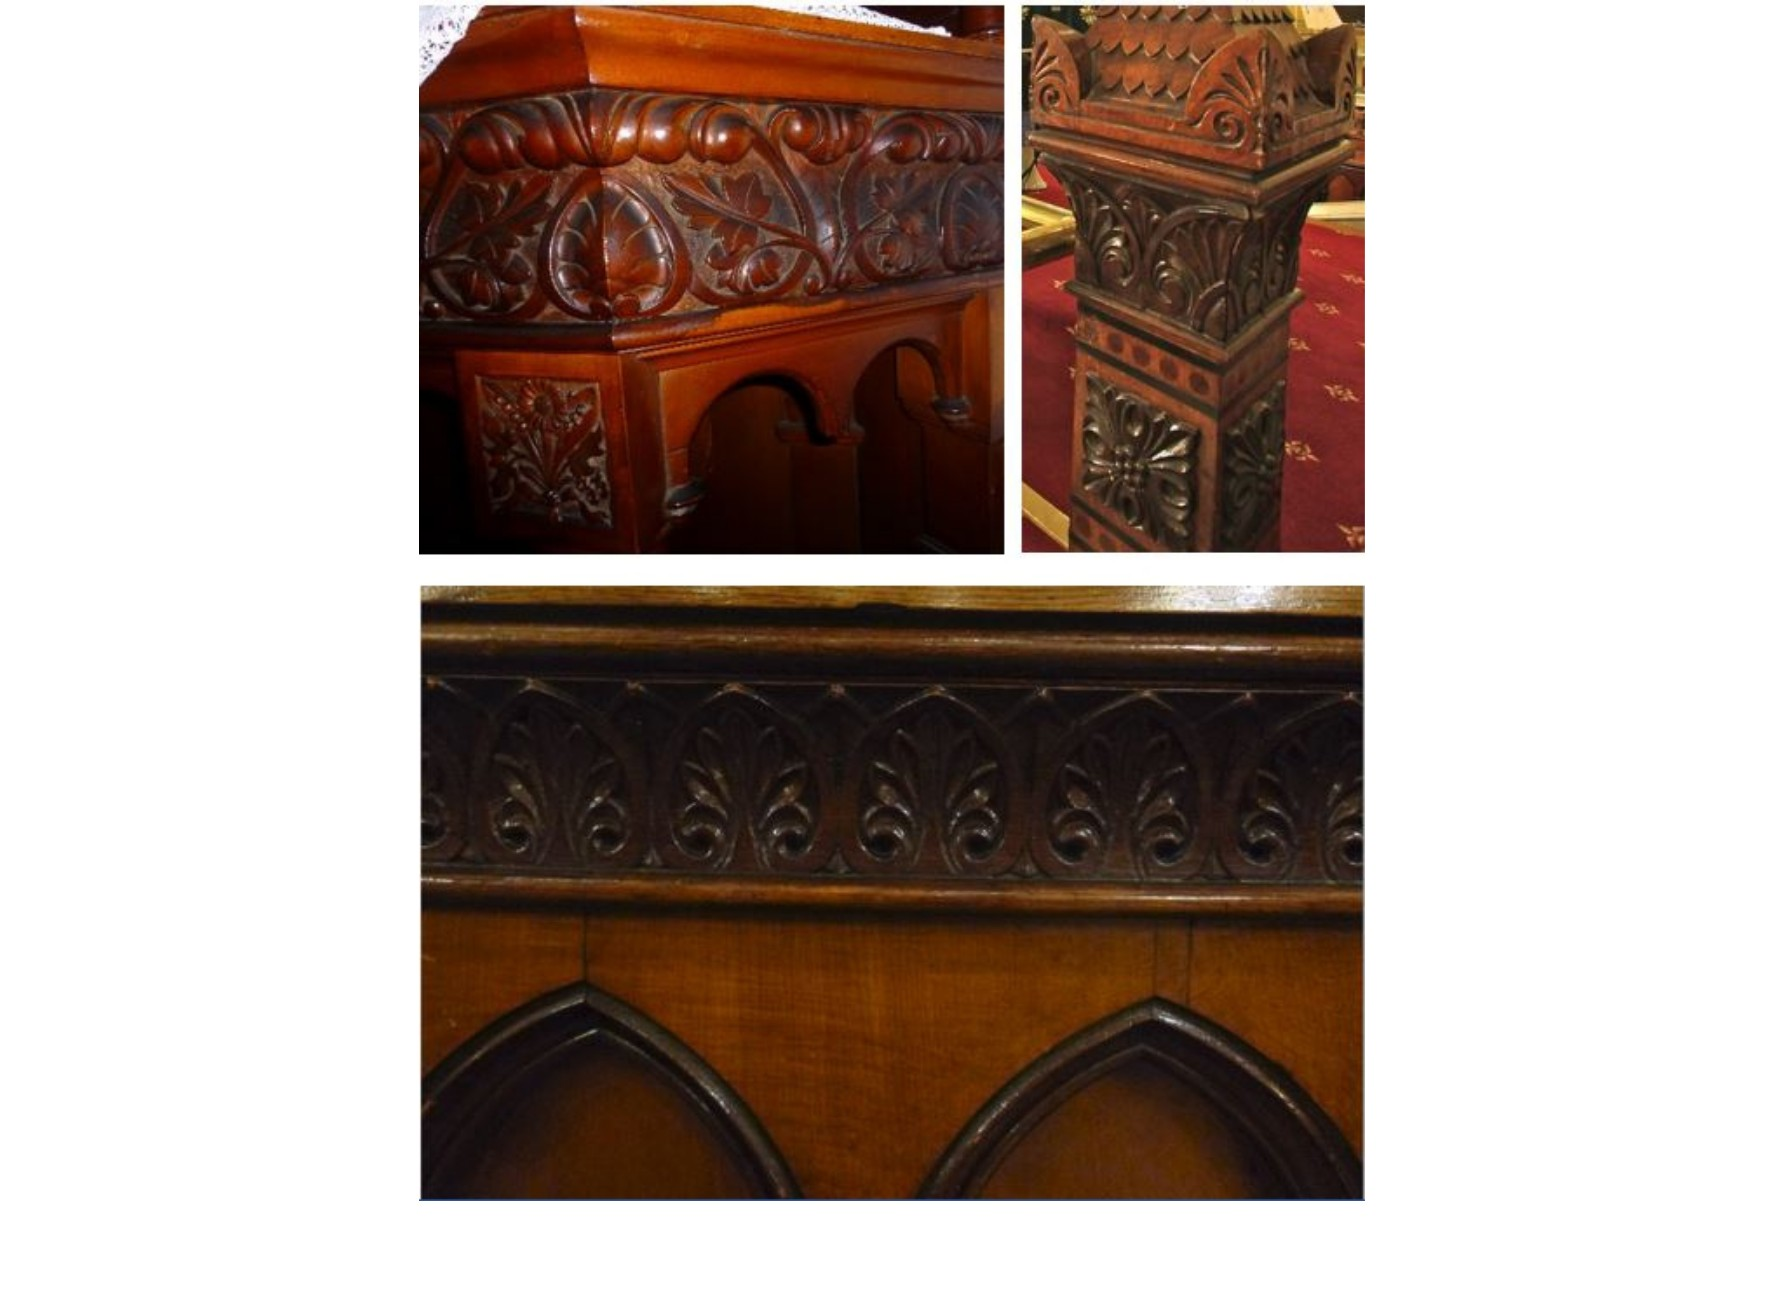 "<span class=""slider_description"">5 of 7. Furniture historians agree on local carpenters' skills shown at both worship places.</span>"